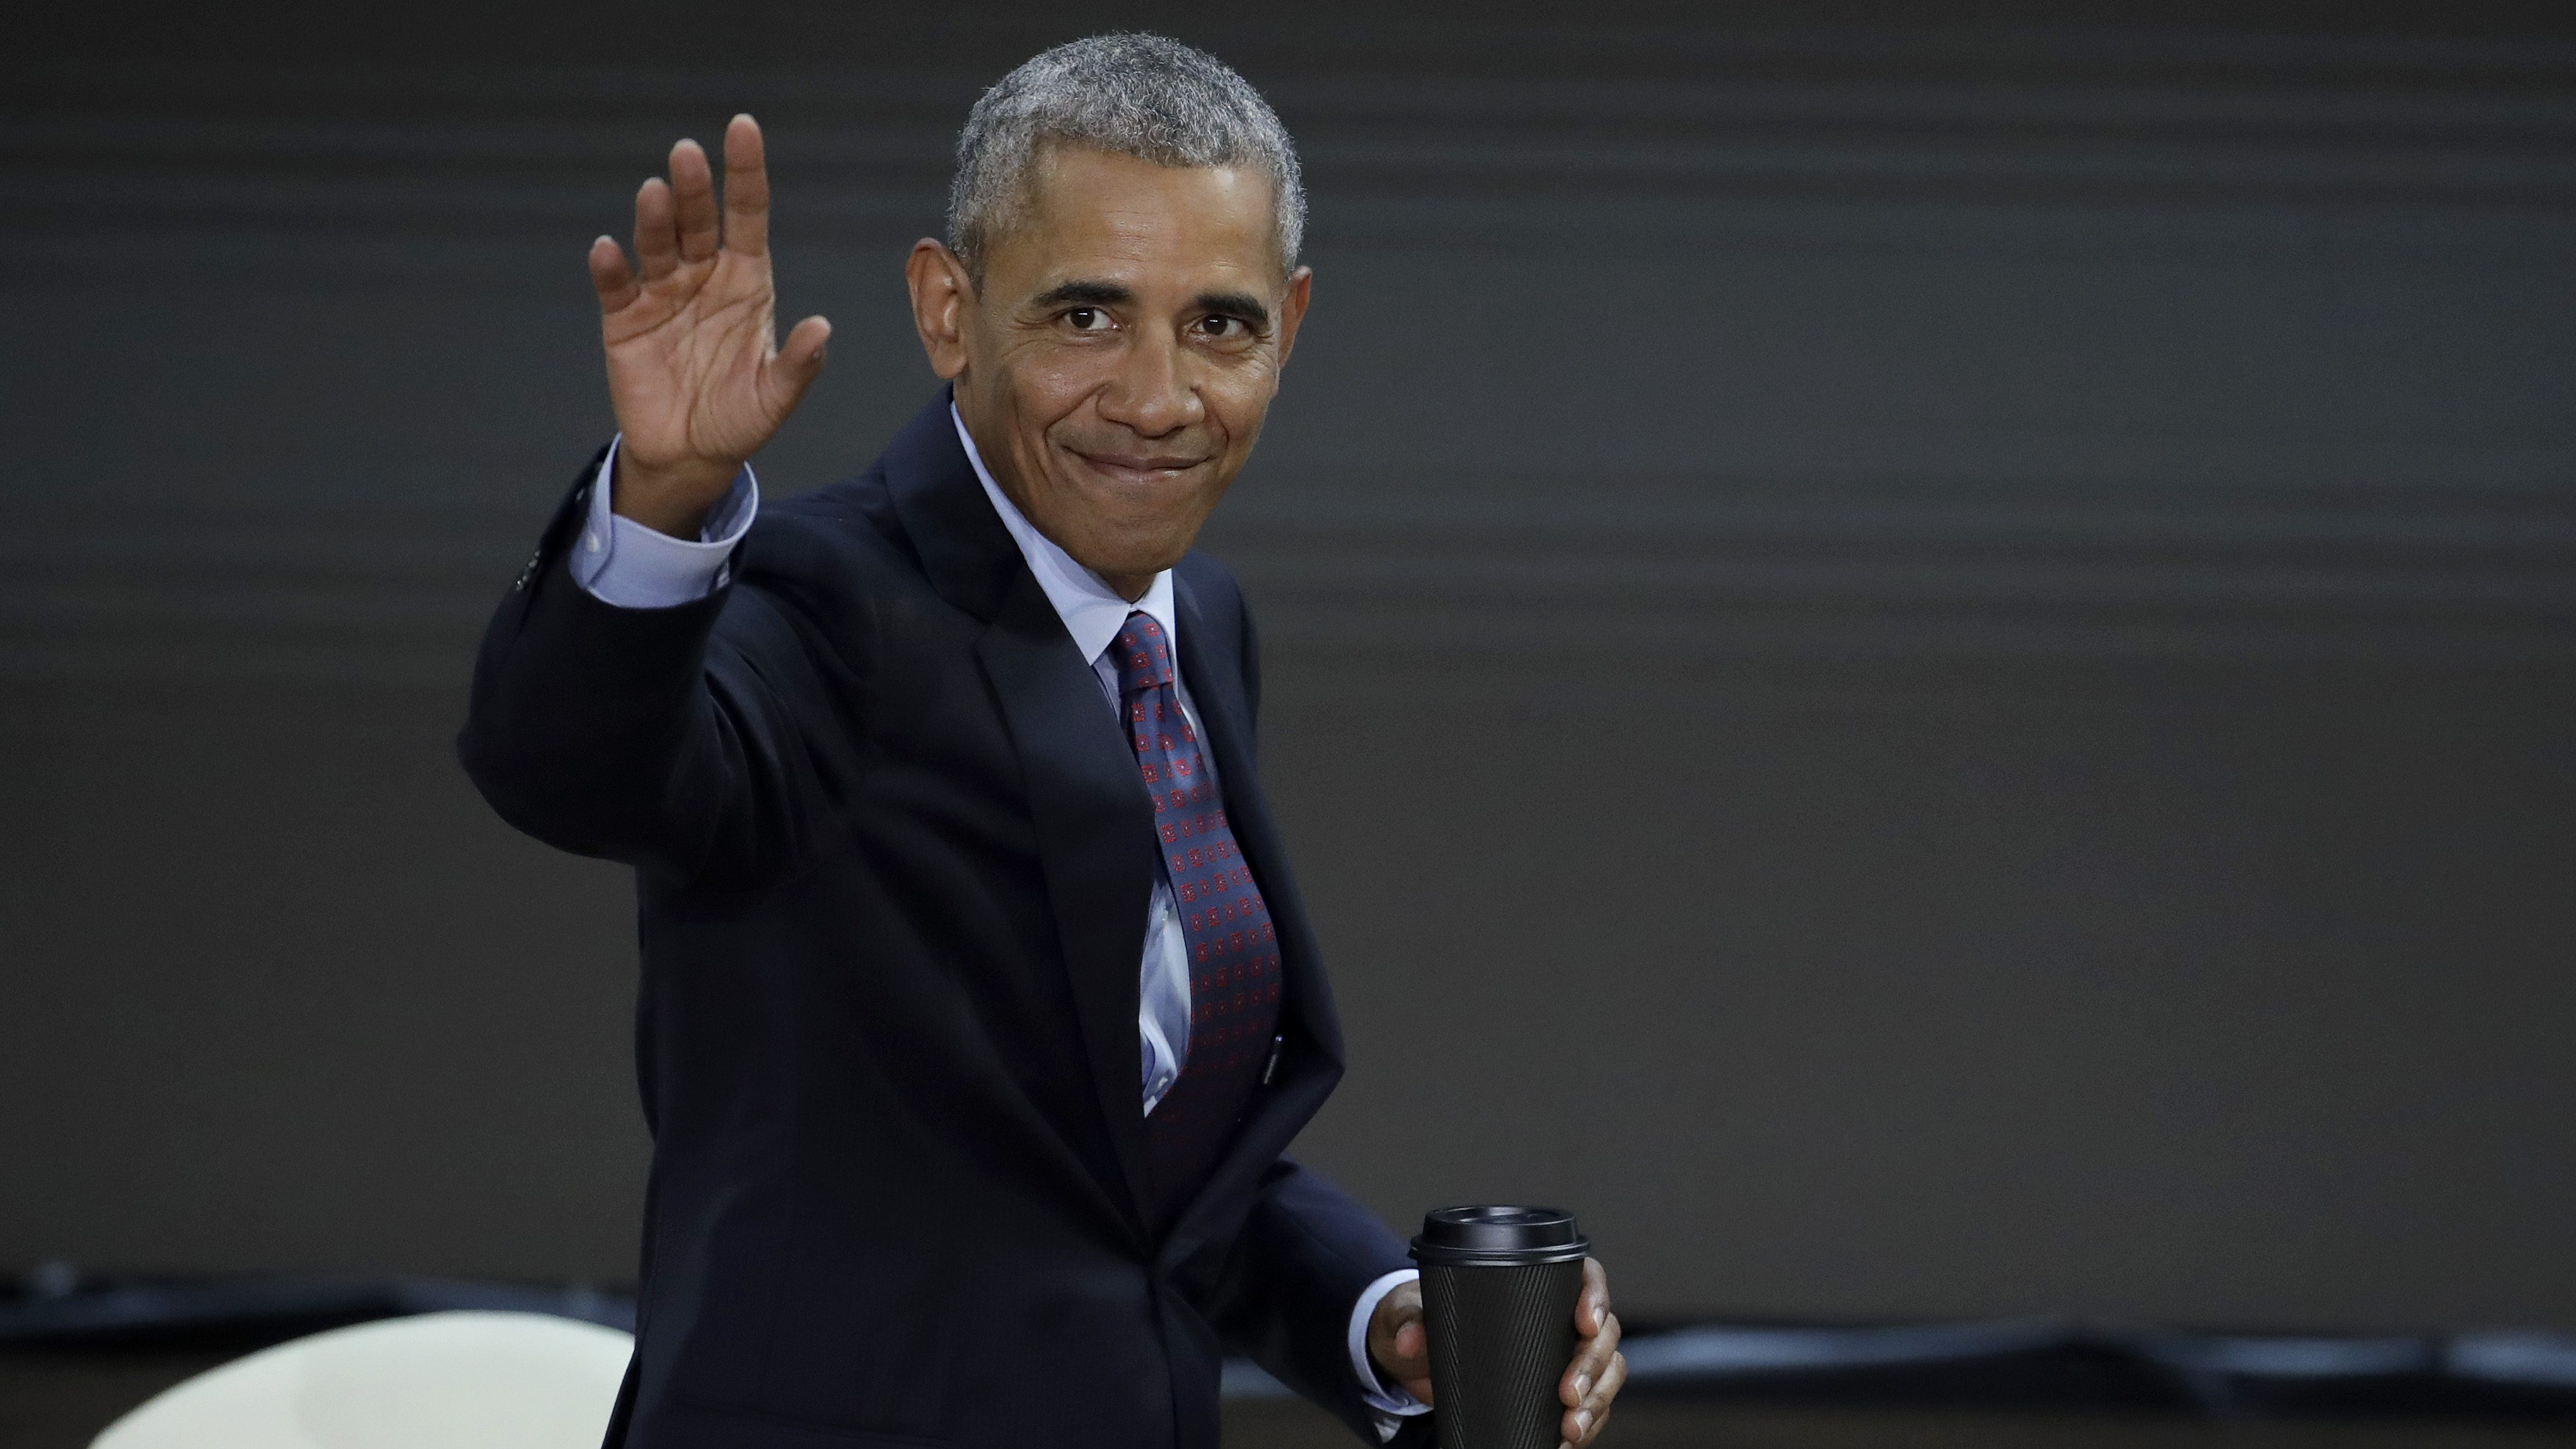 Former President Barack Obama waves as he leaves the stage after speaking during the Goalkeepers Conference hosts by the Bill and Melinda Gates Foundation, Wednesday, Sept. 20, 2017, in New York. (AP Photo/Julio Cortez)